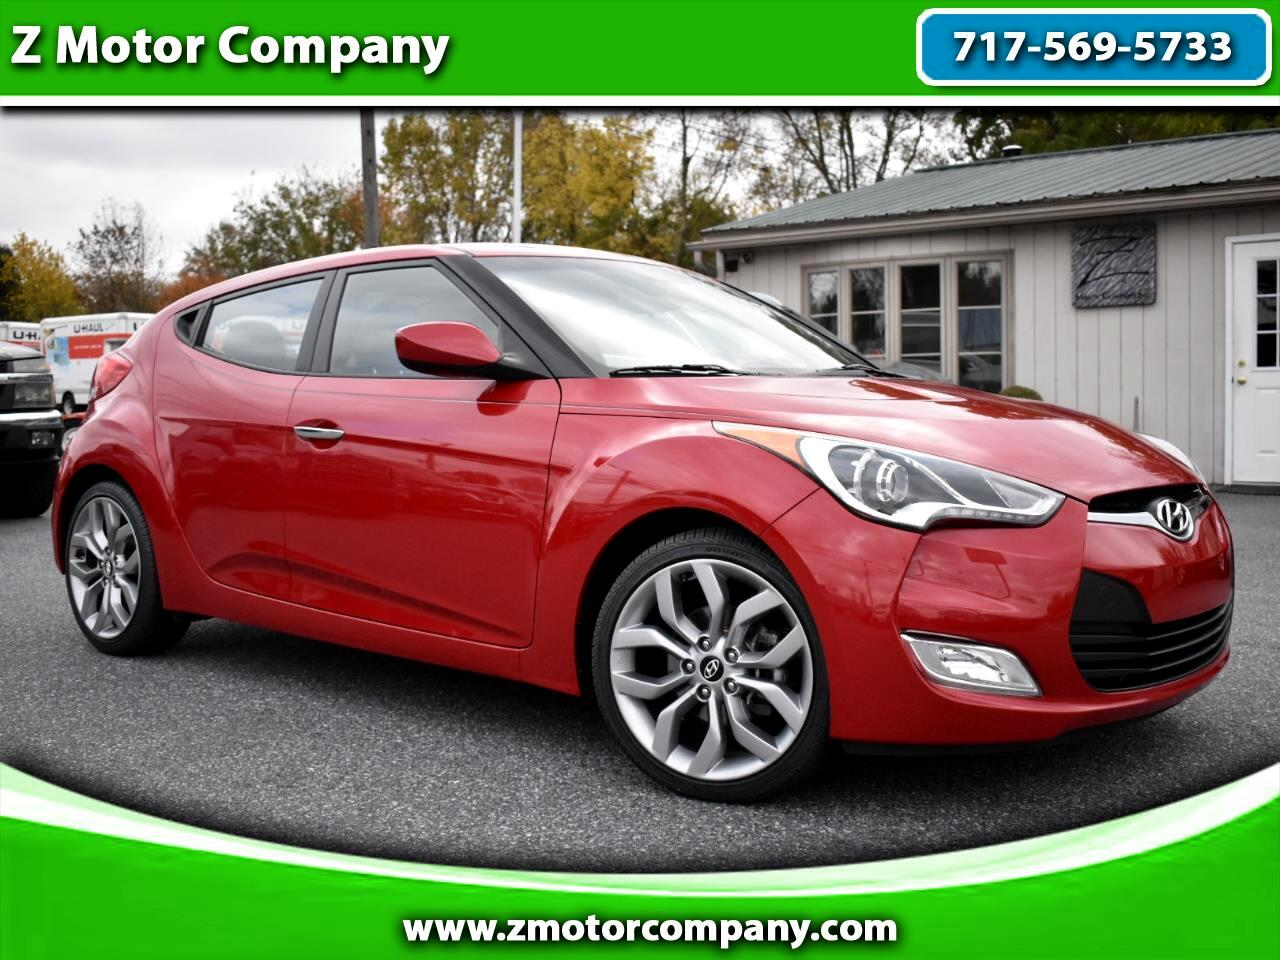 2014 Hyundai Veloster 3dr Cpe Auto RE:FLEX w/Black Int